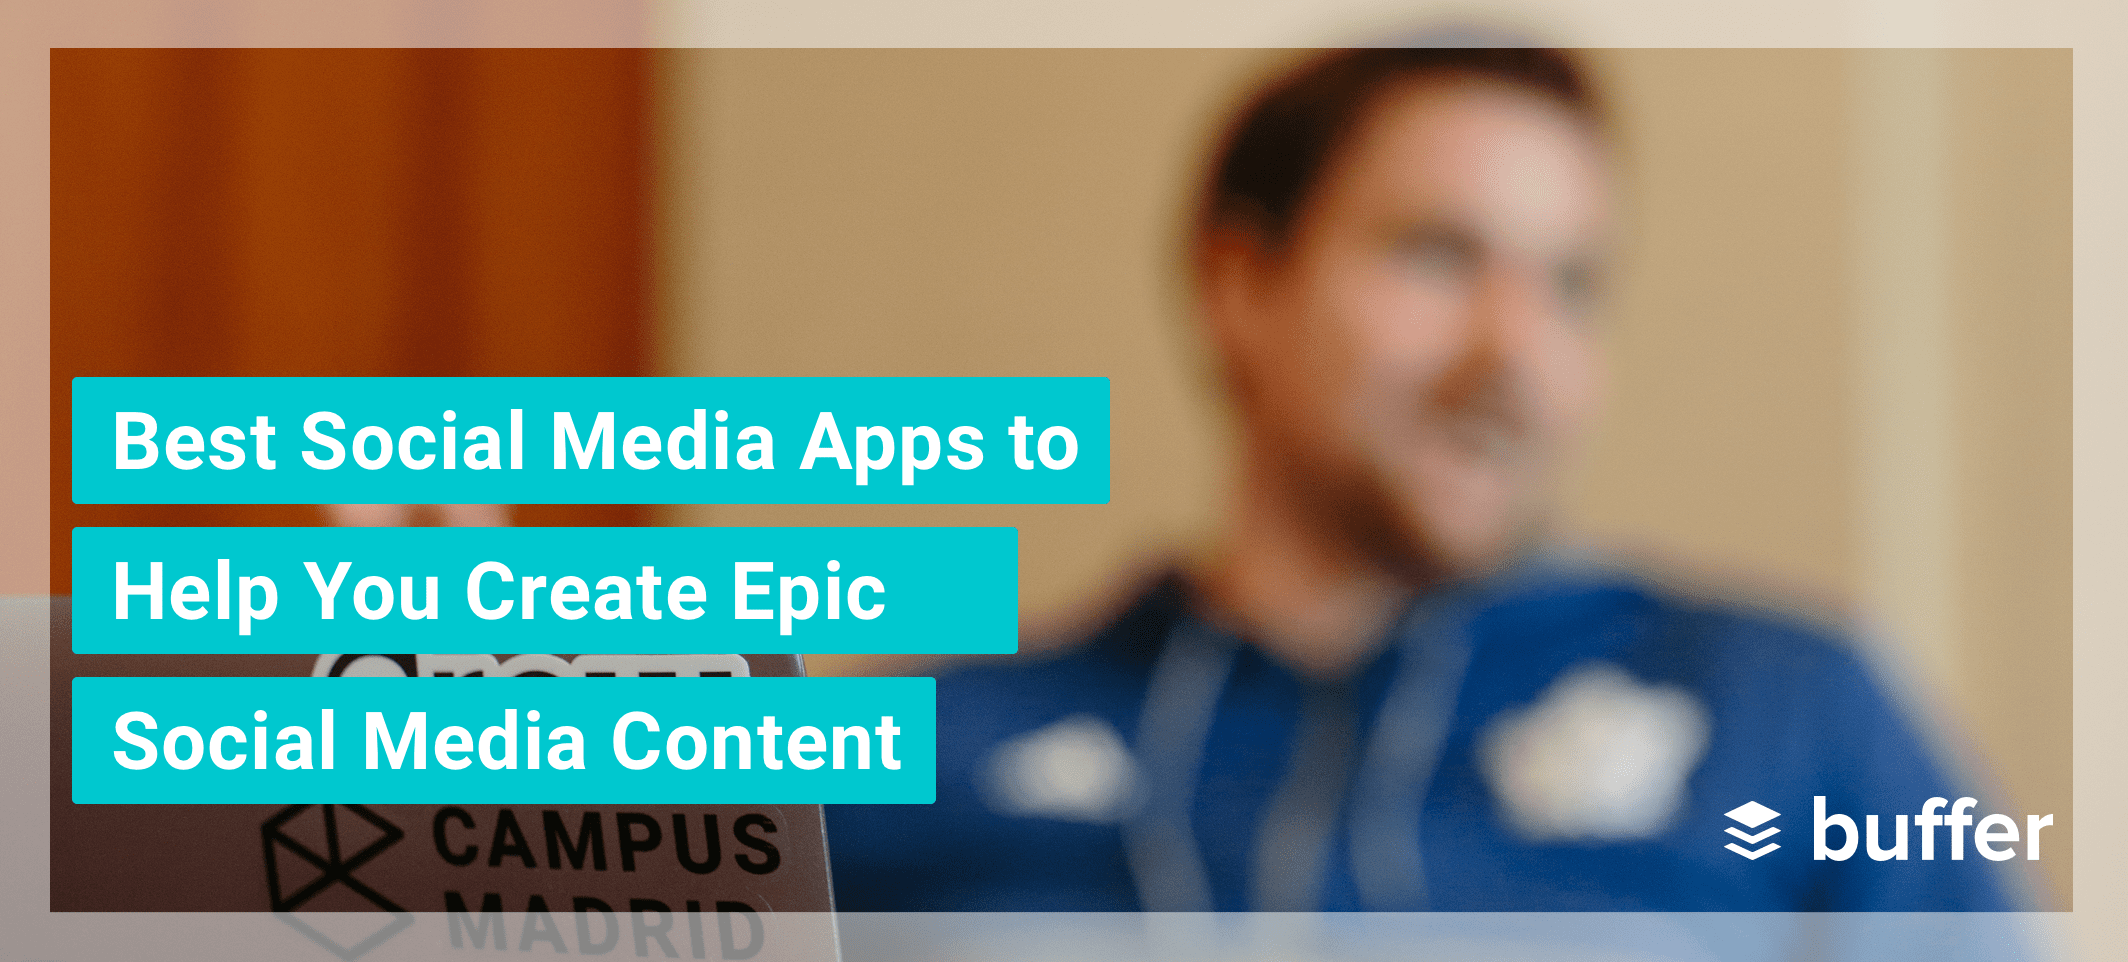 26 Best Social Media Apps to Help You Create Epic Social Media Content